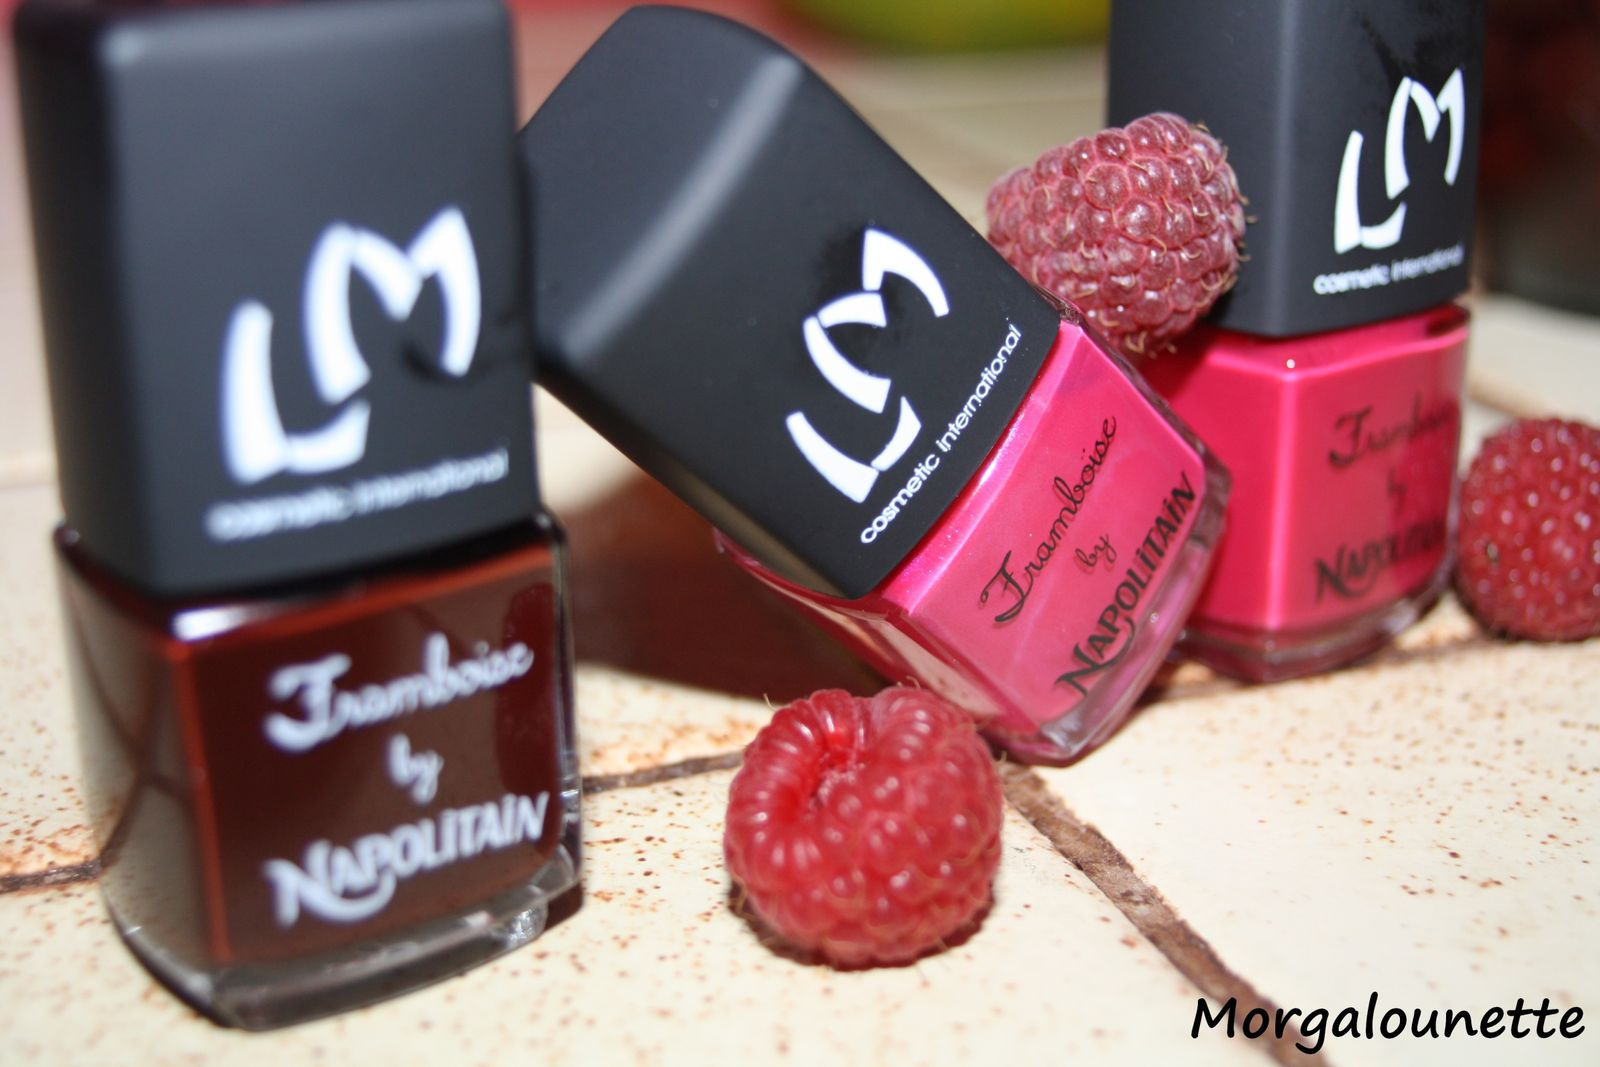 La collection Framboise by Napolitain